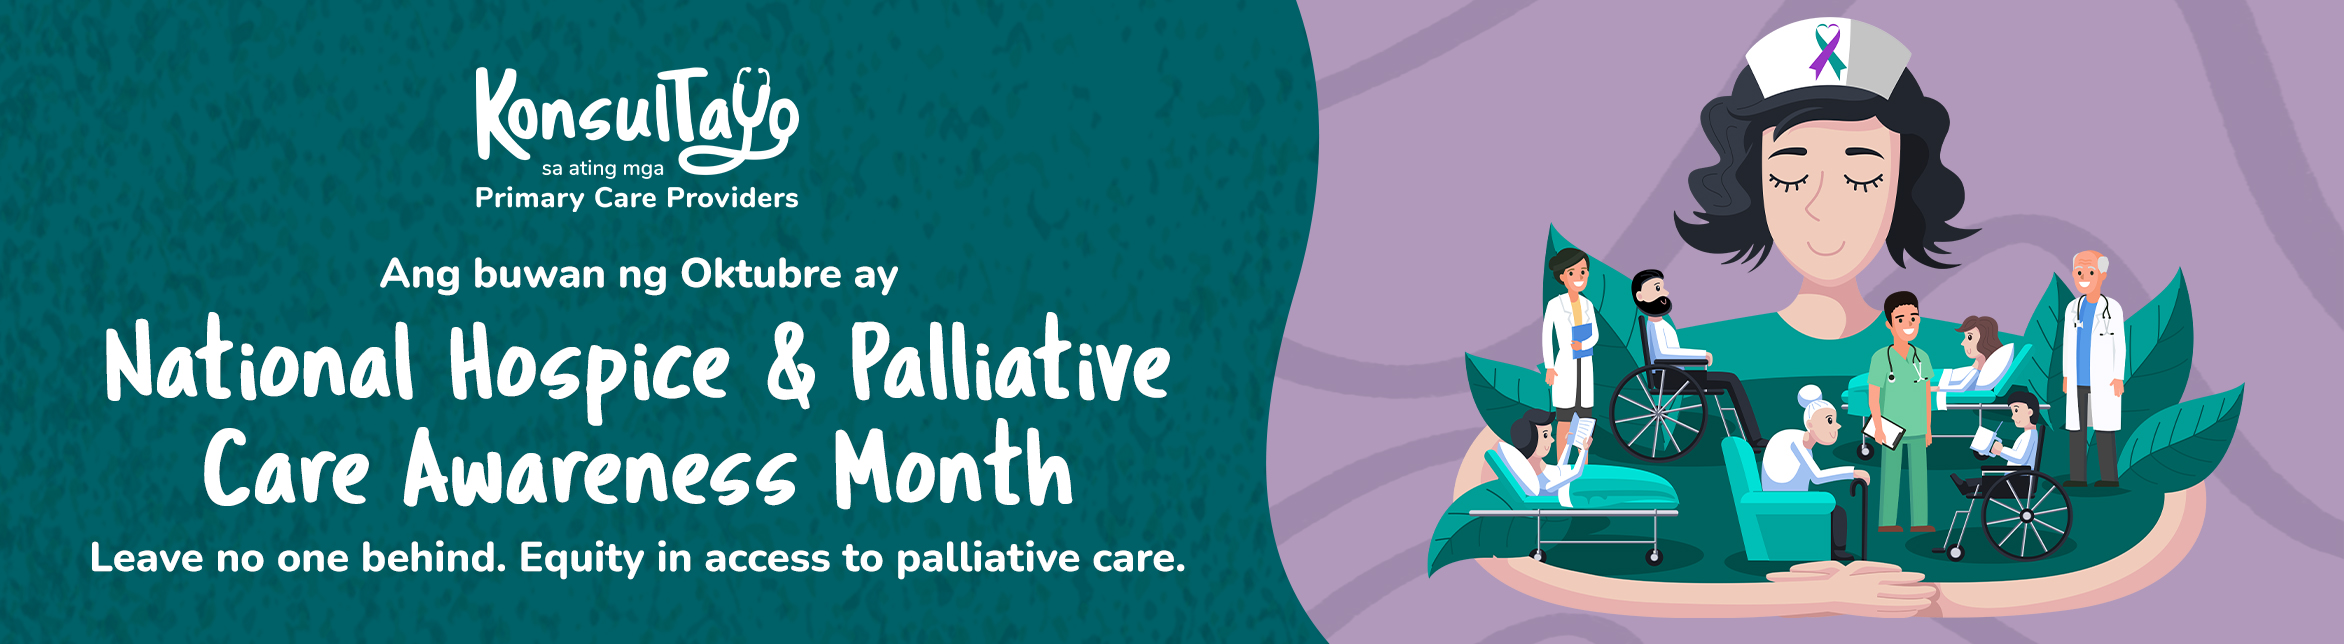 Hospice and Palliative Care Awareness Month